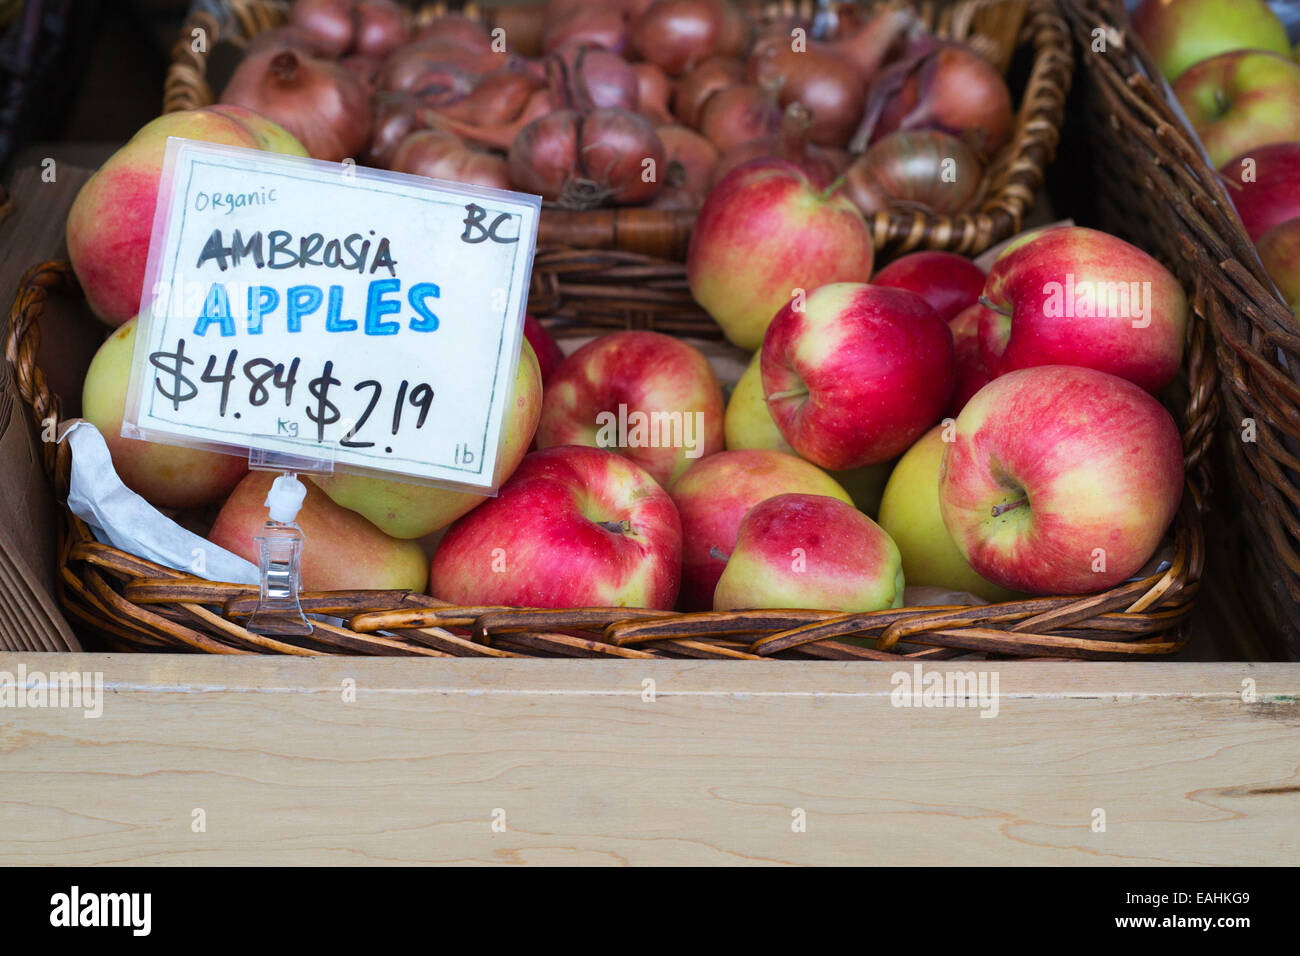 Organic Ambrosia apples grown in British Columbia for sale at Calgary market - Stock Image